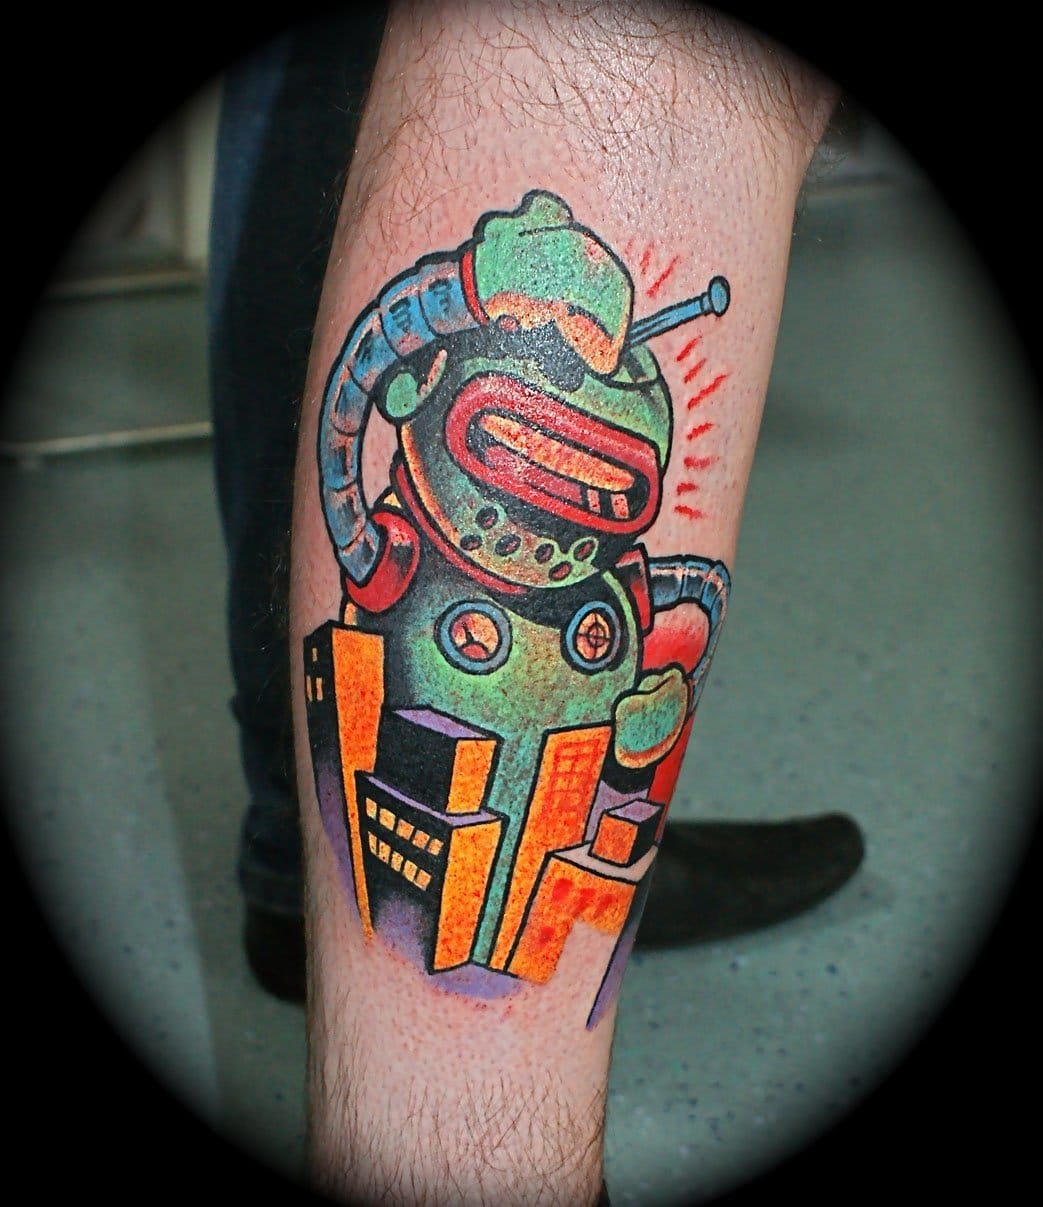 Awesome tattoo by Dan Gold